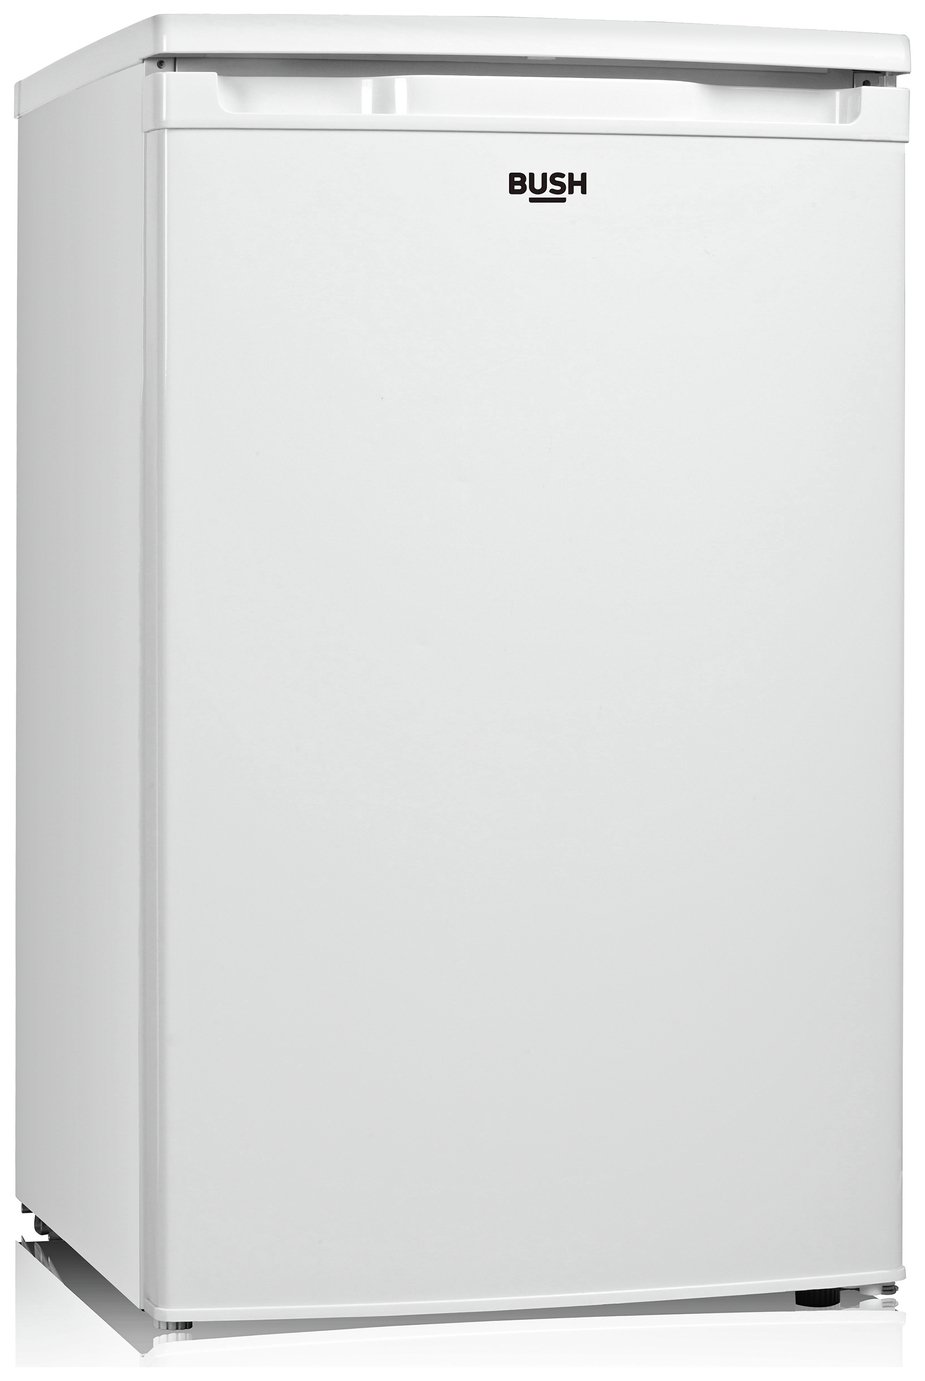 Image of Bush M5085UCF Under Counter Fridge - White